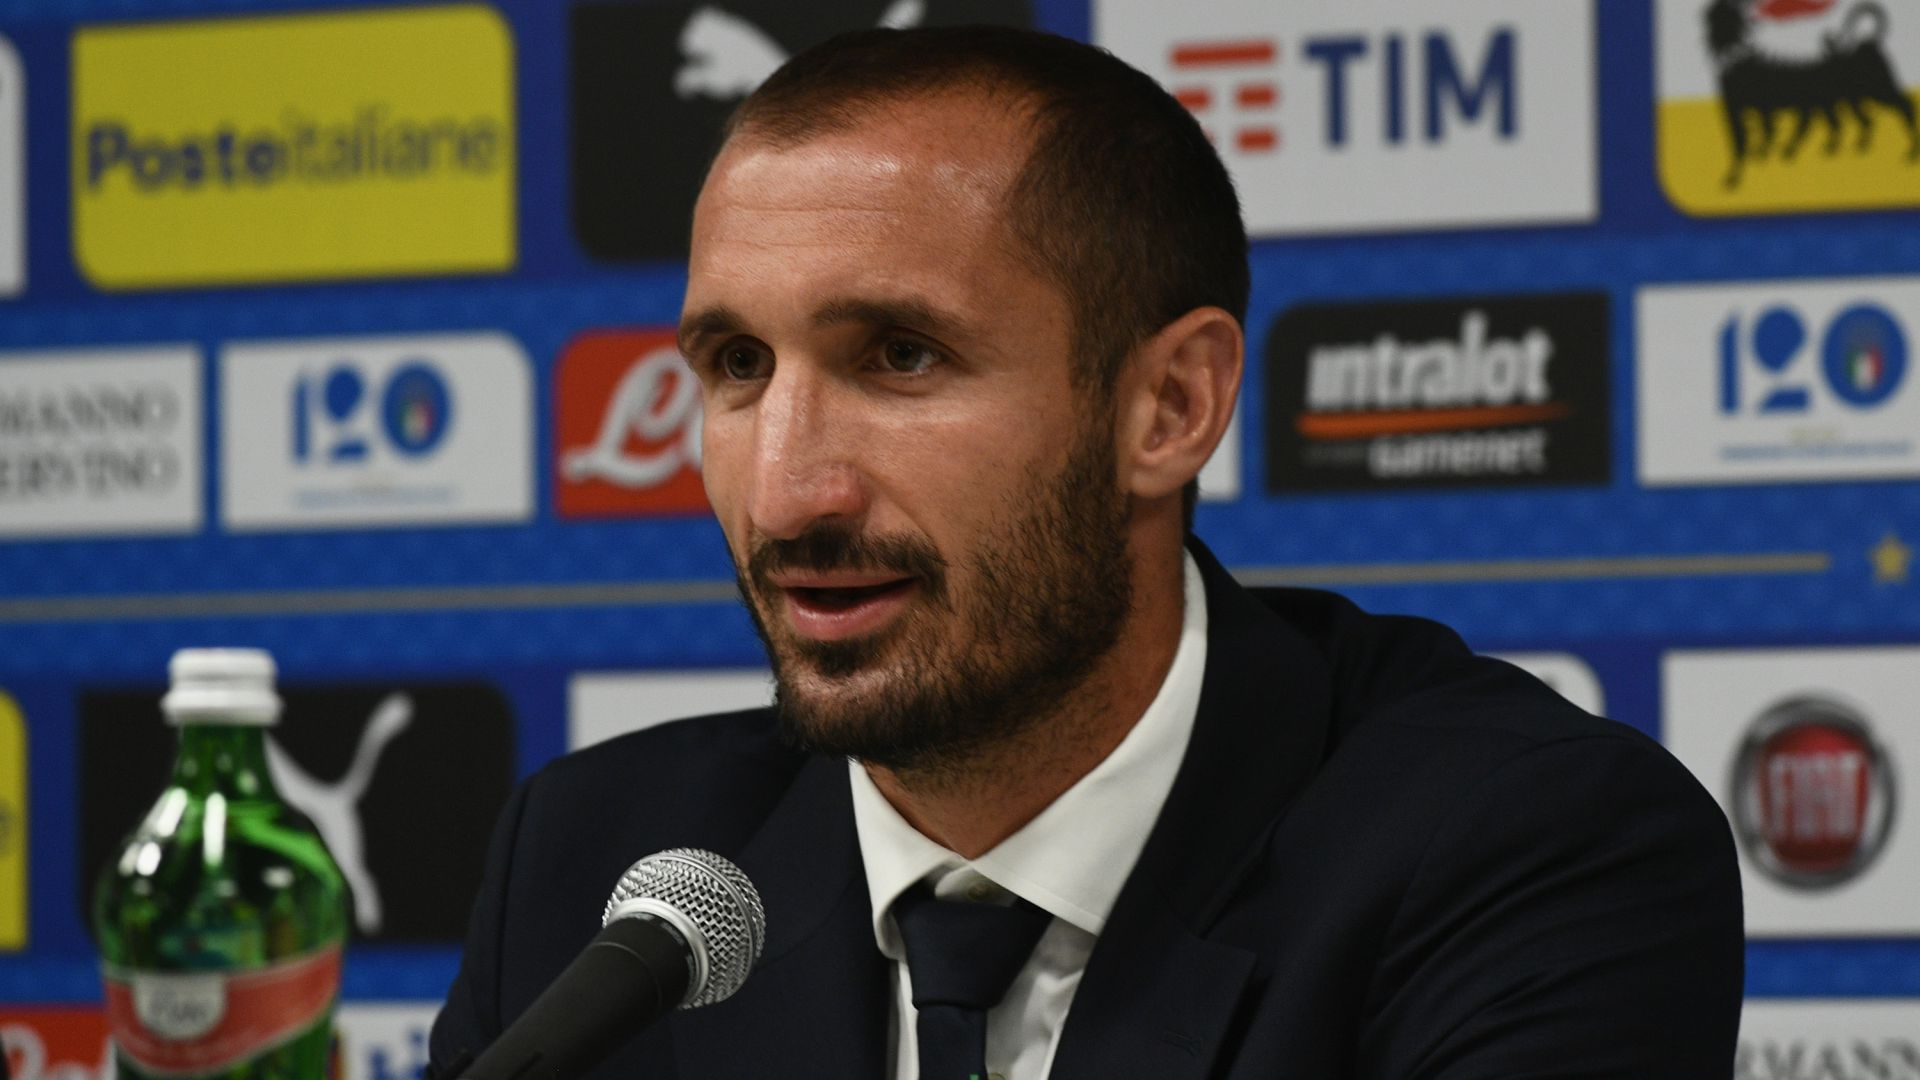 Giorgio Chiellini Italy press conference 06092018